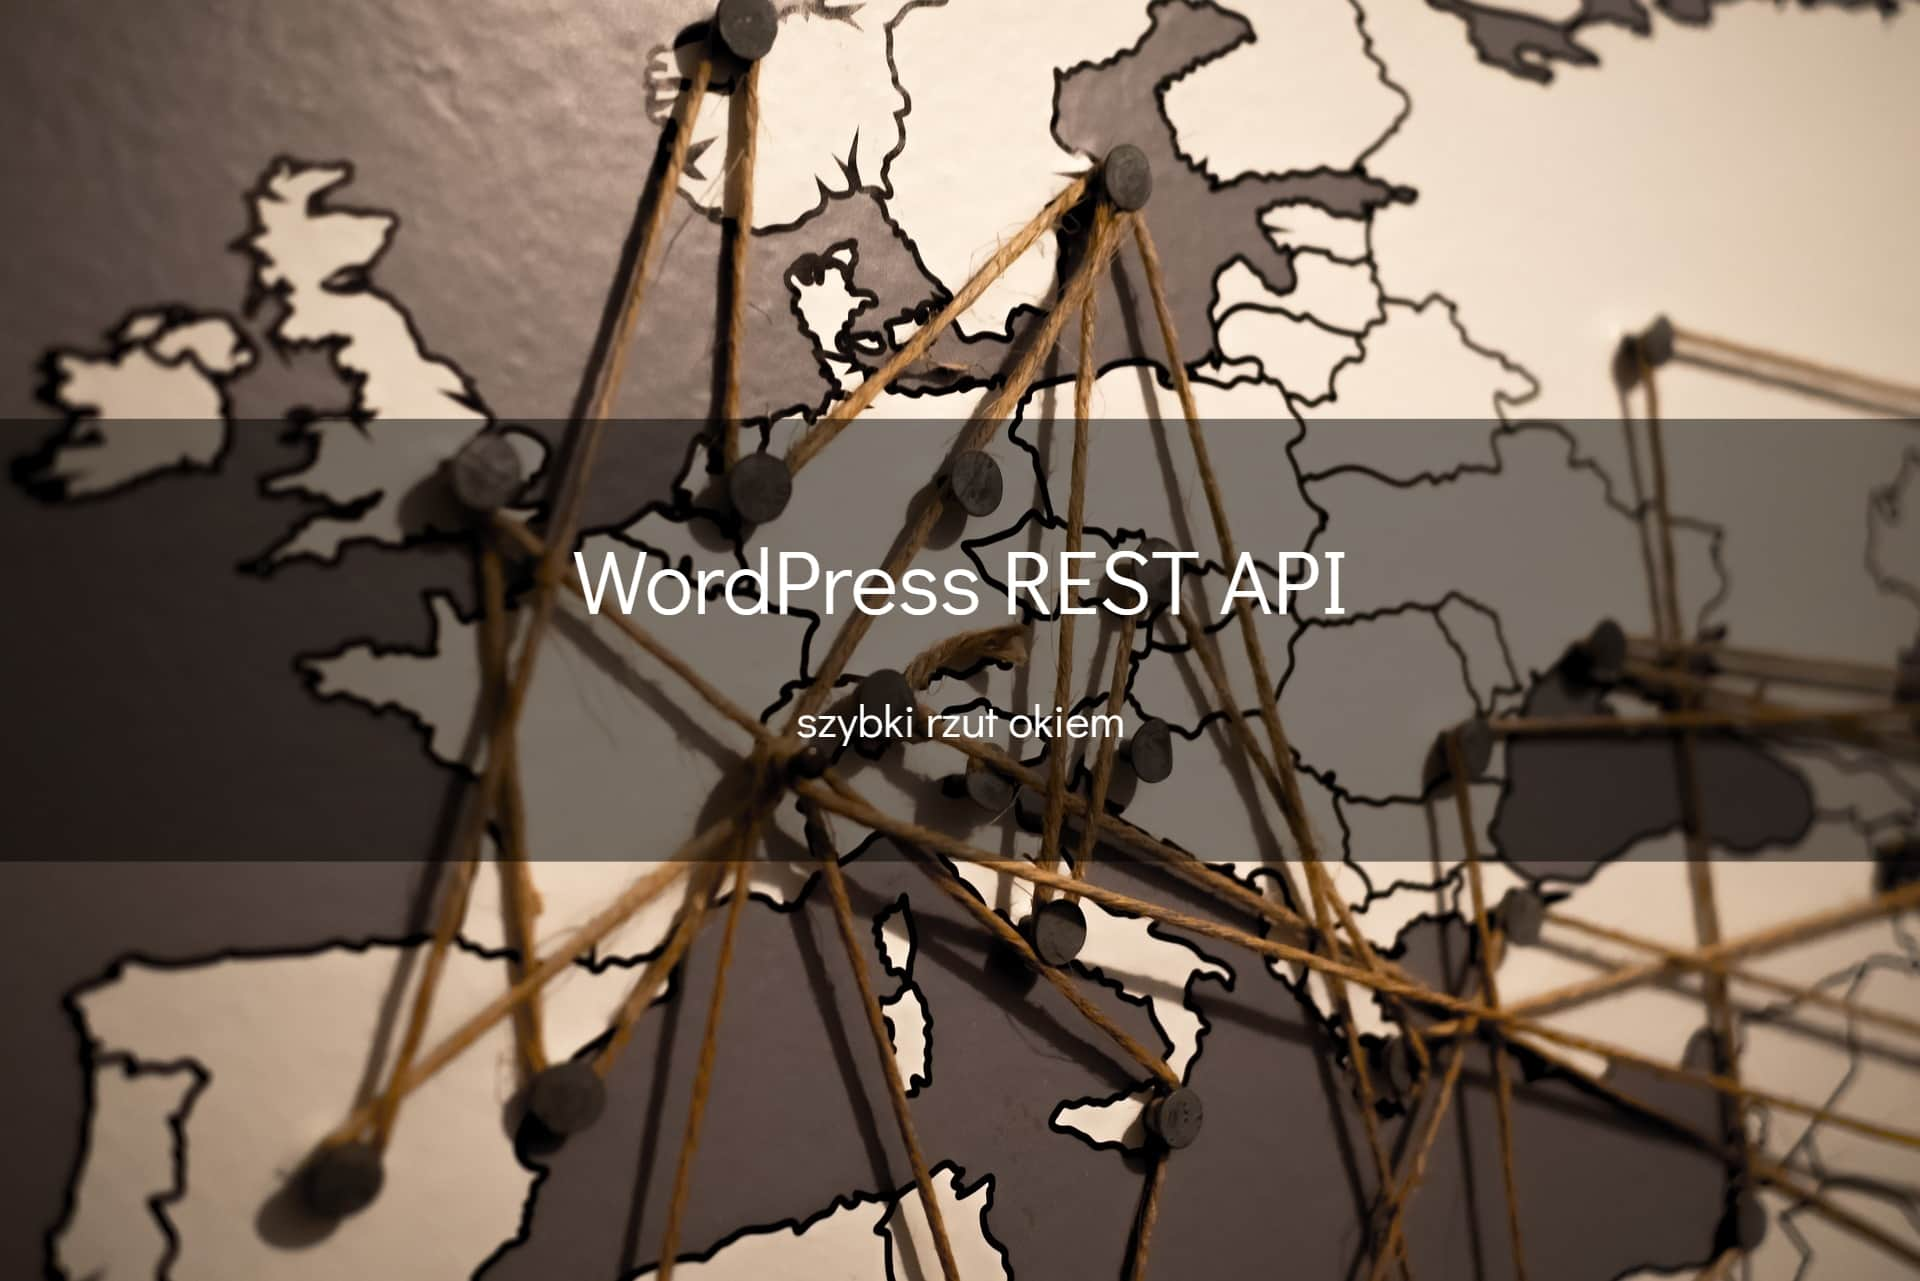 Rzut okiem na WordPress REST API